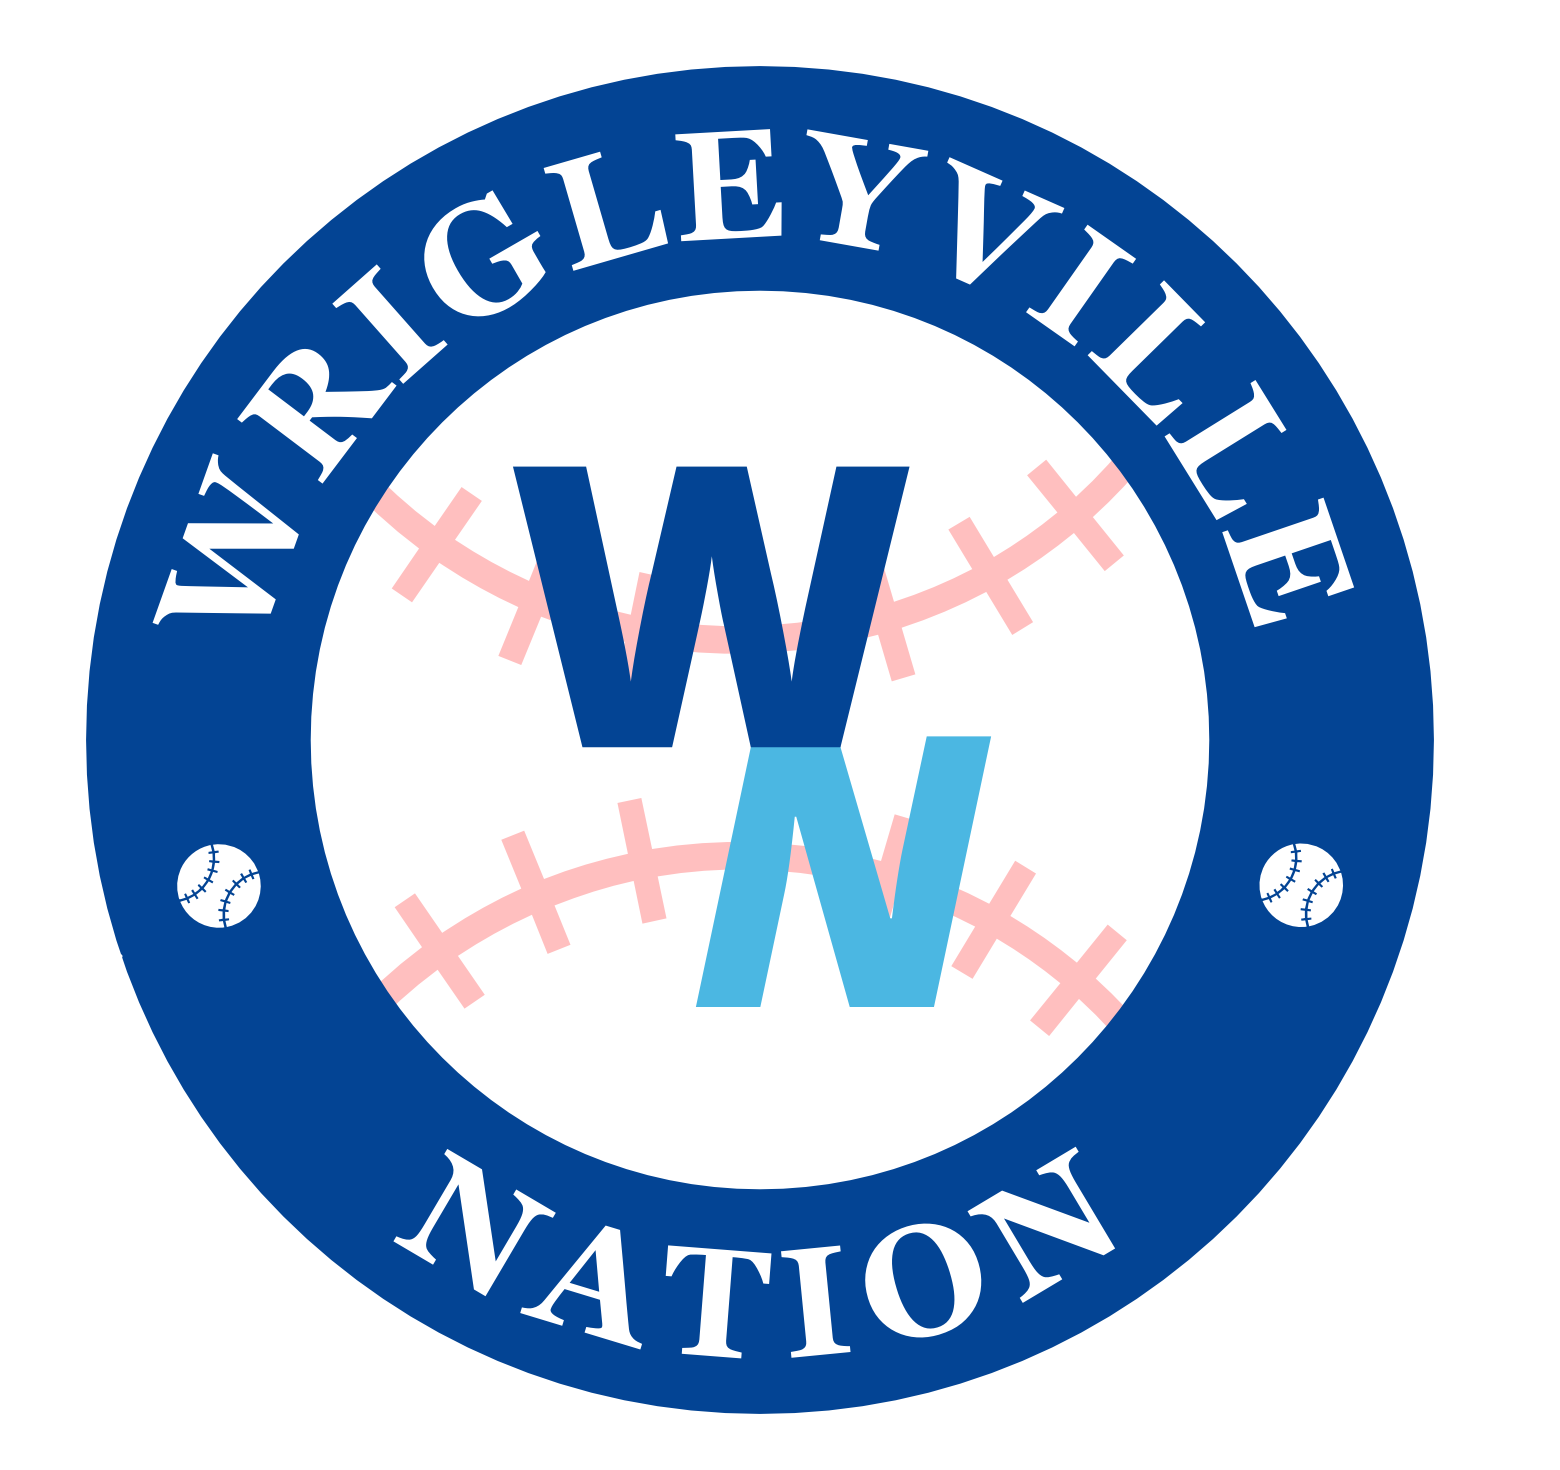 Wrigleyville Nation Ep 236- Guest: Ryan Davis, Cubs Eliminated,Postmortem, Look Ahead To 2021 show art